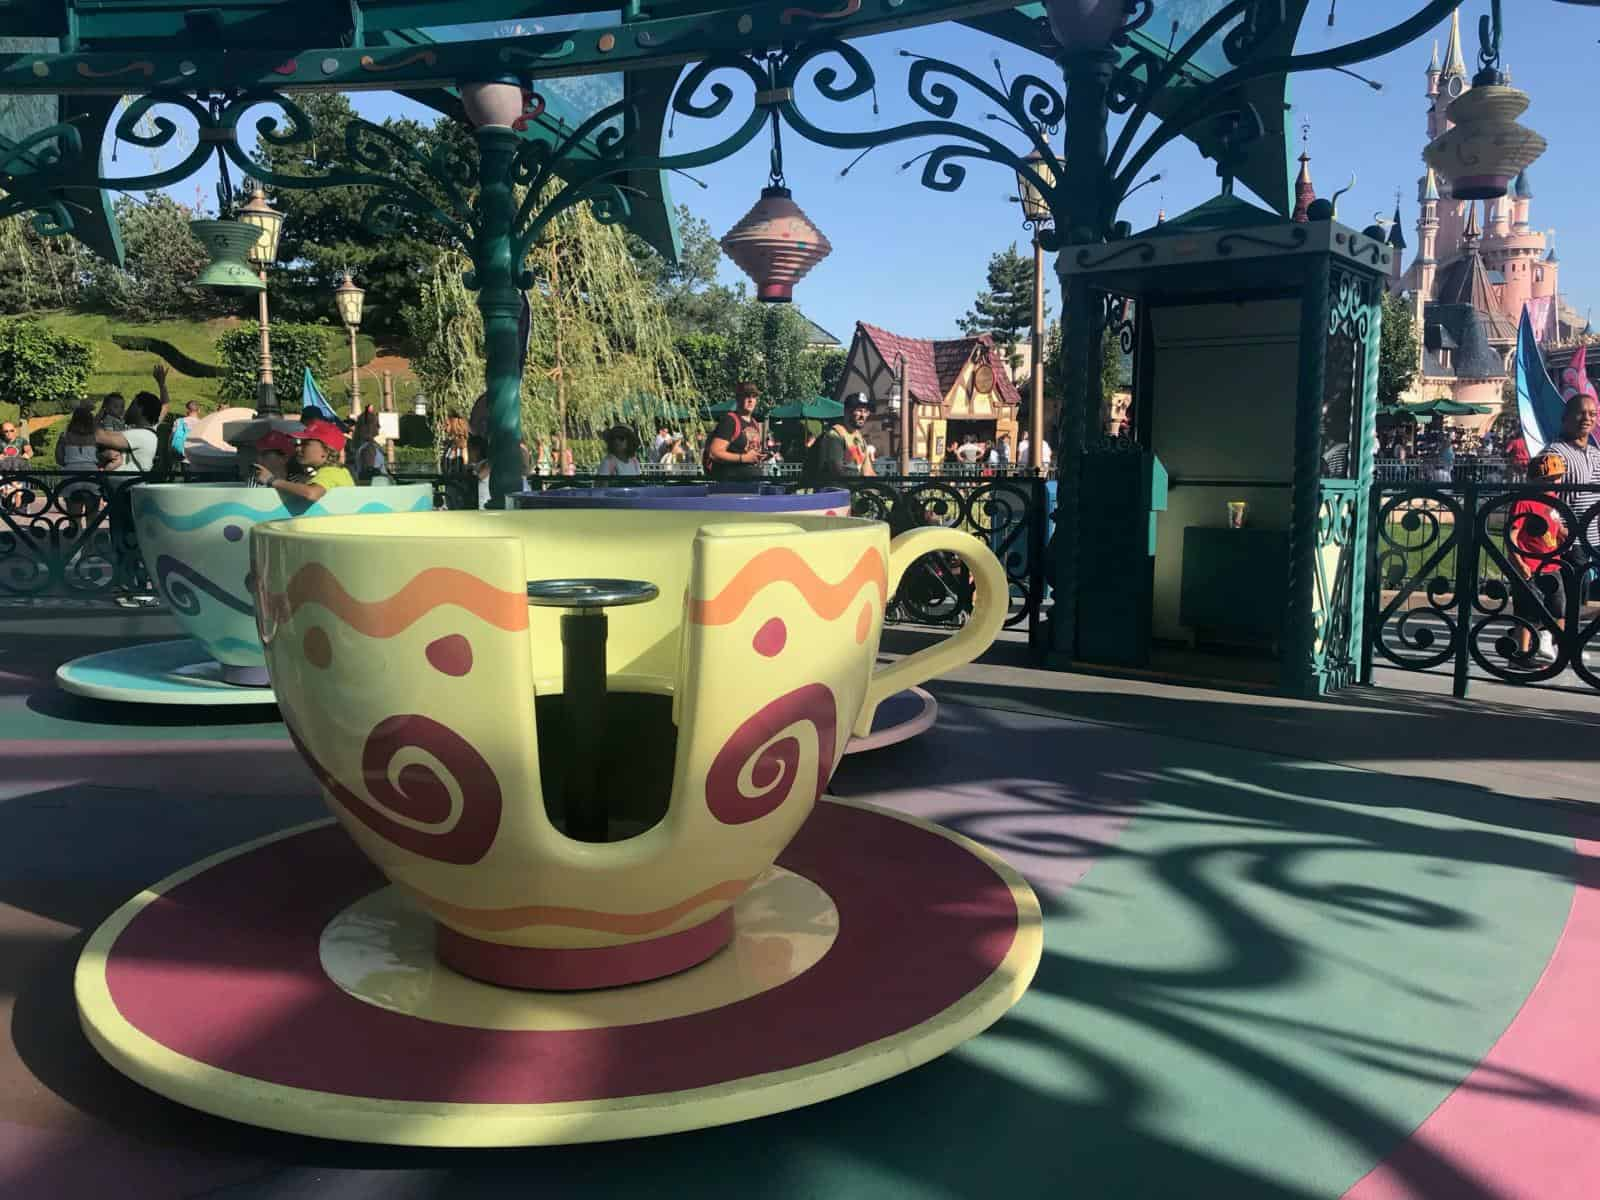 Disneyland Paris with toddlers and baby tips - why dumbo is the best disneyland paris rides for toddlers - Mad Hatter's Teacups